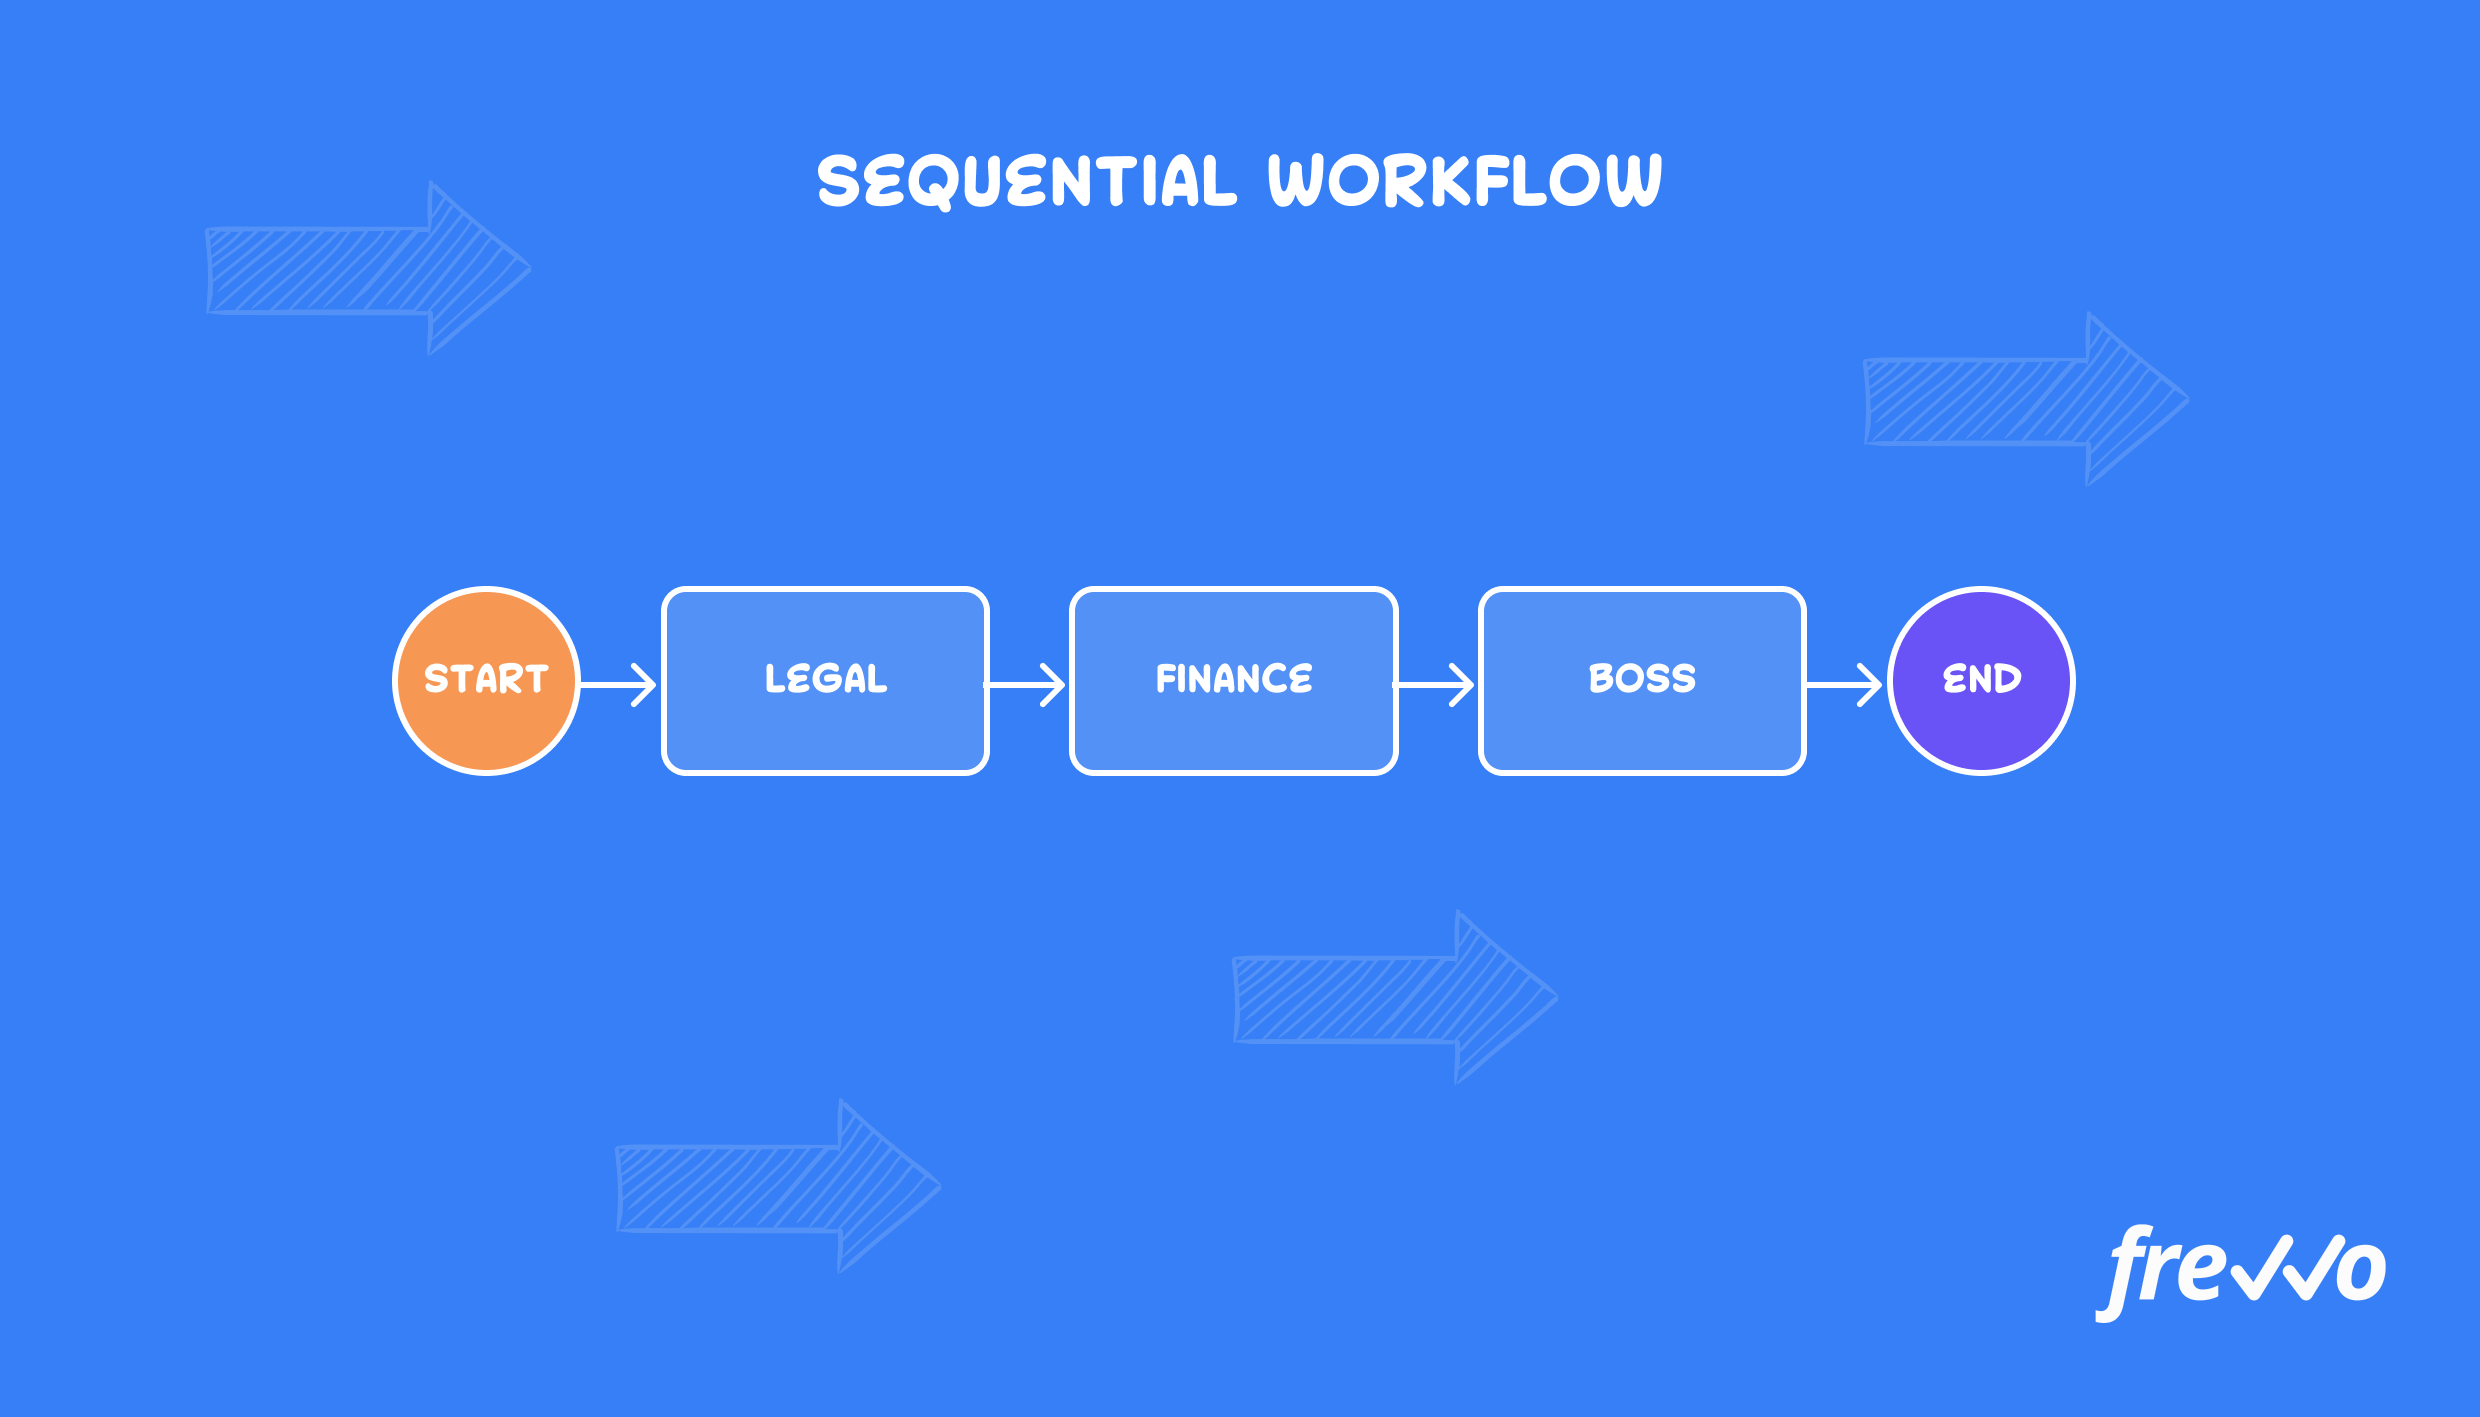 Sequential workflow example